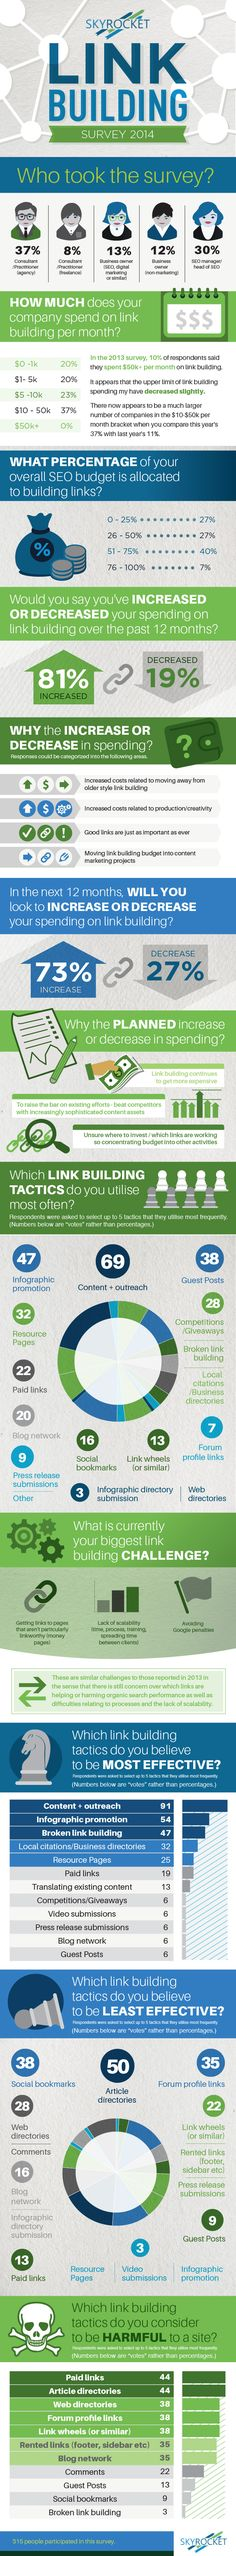 Link building survey showing the state of SEO right now and the most effective link building strategies in use right now. #seo #linkbuilding